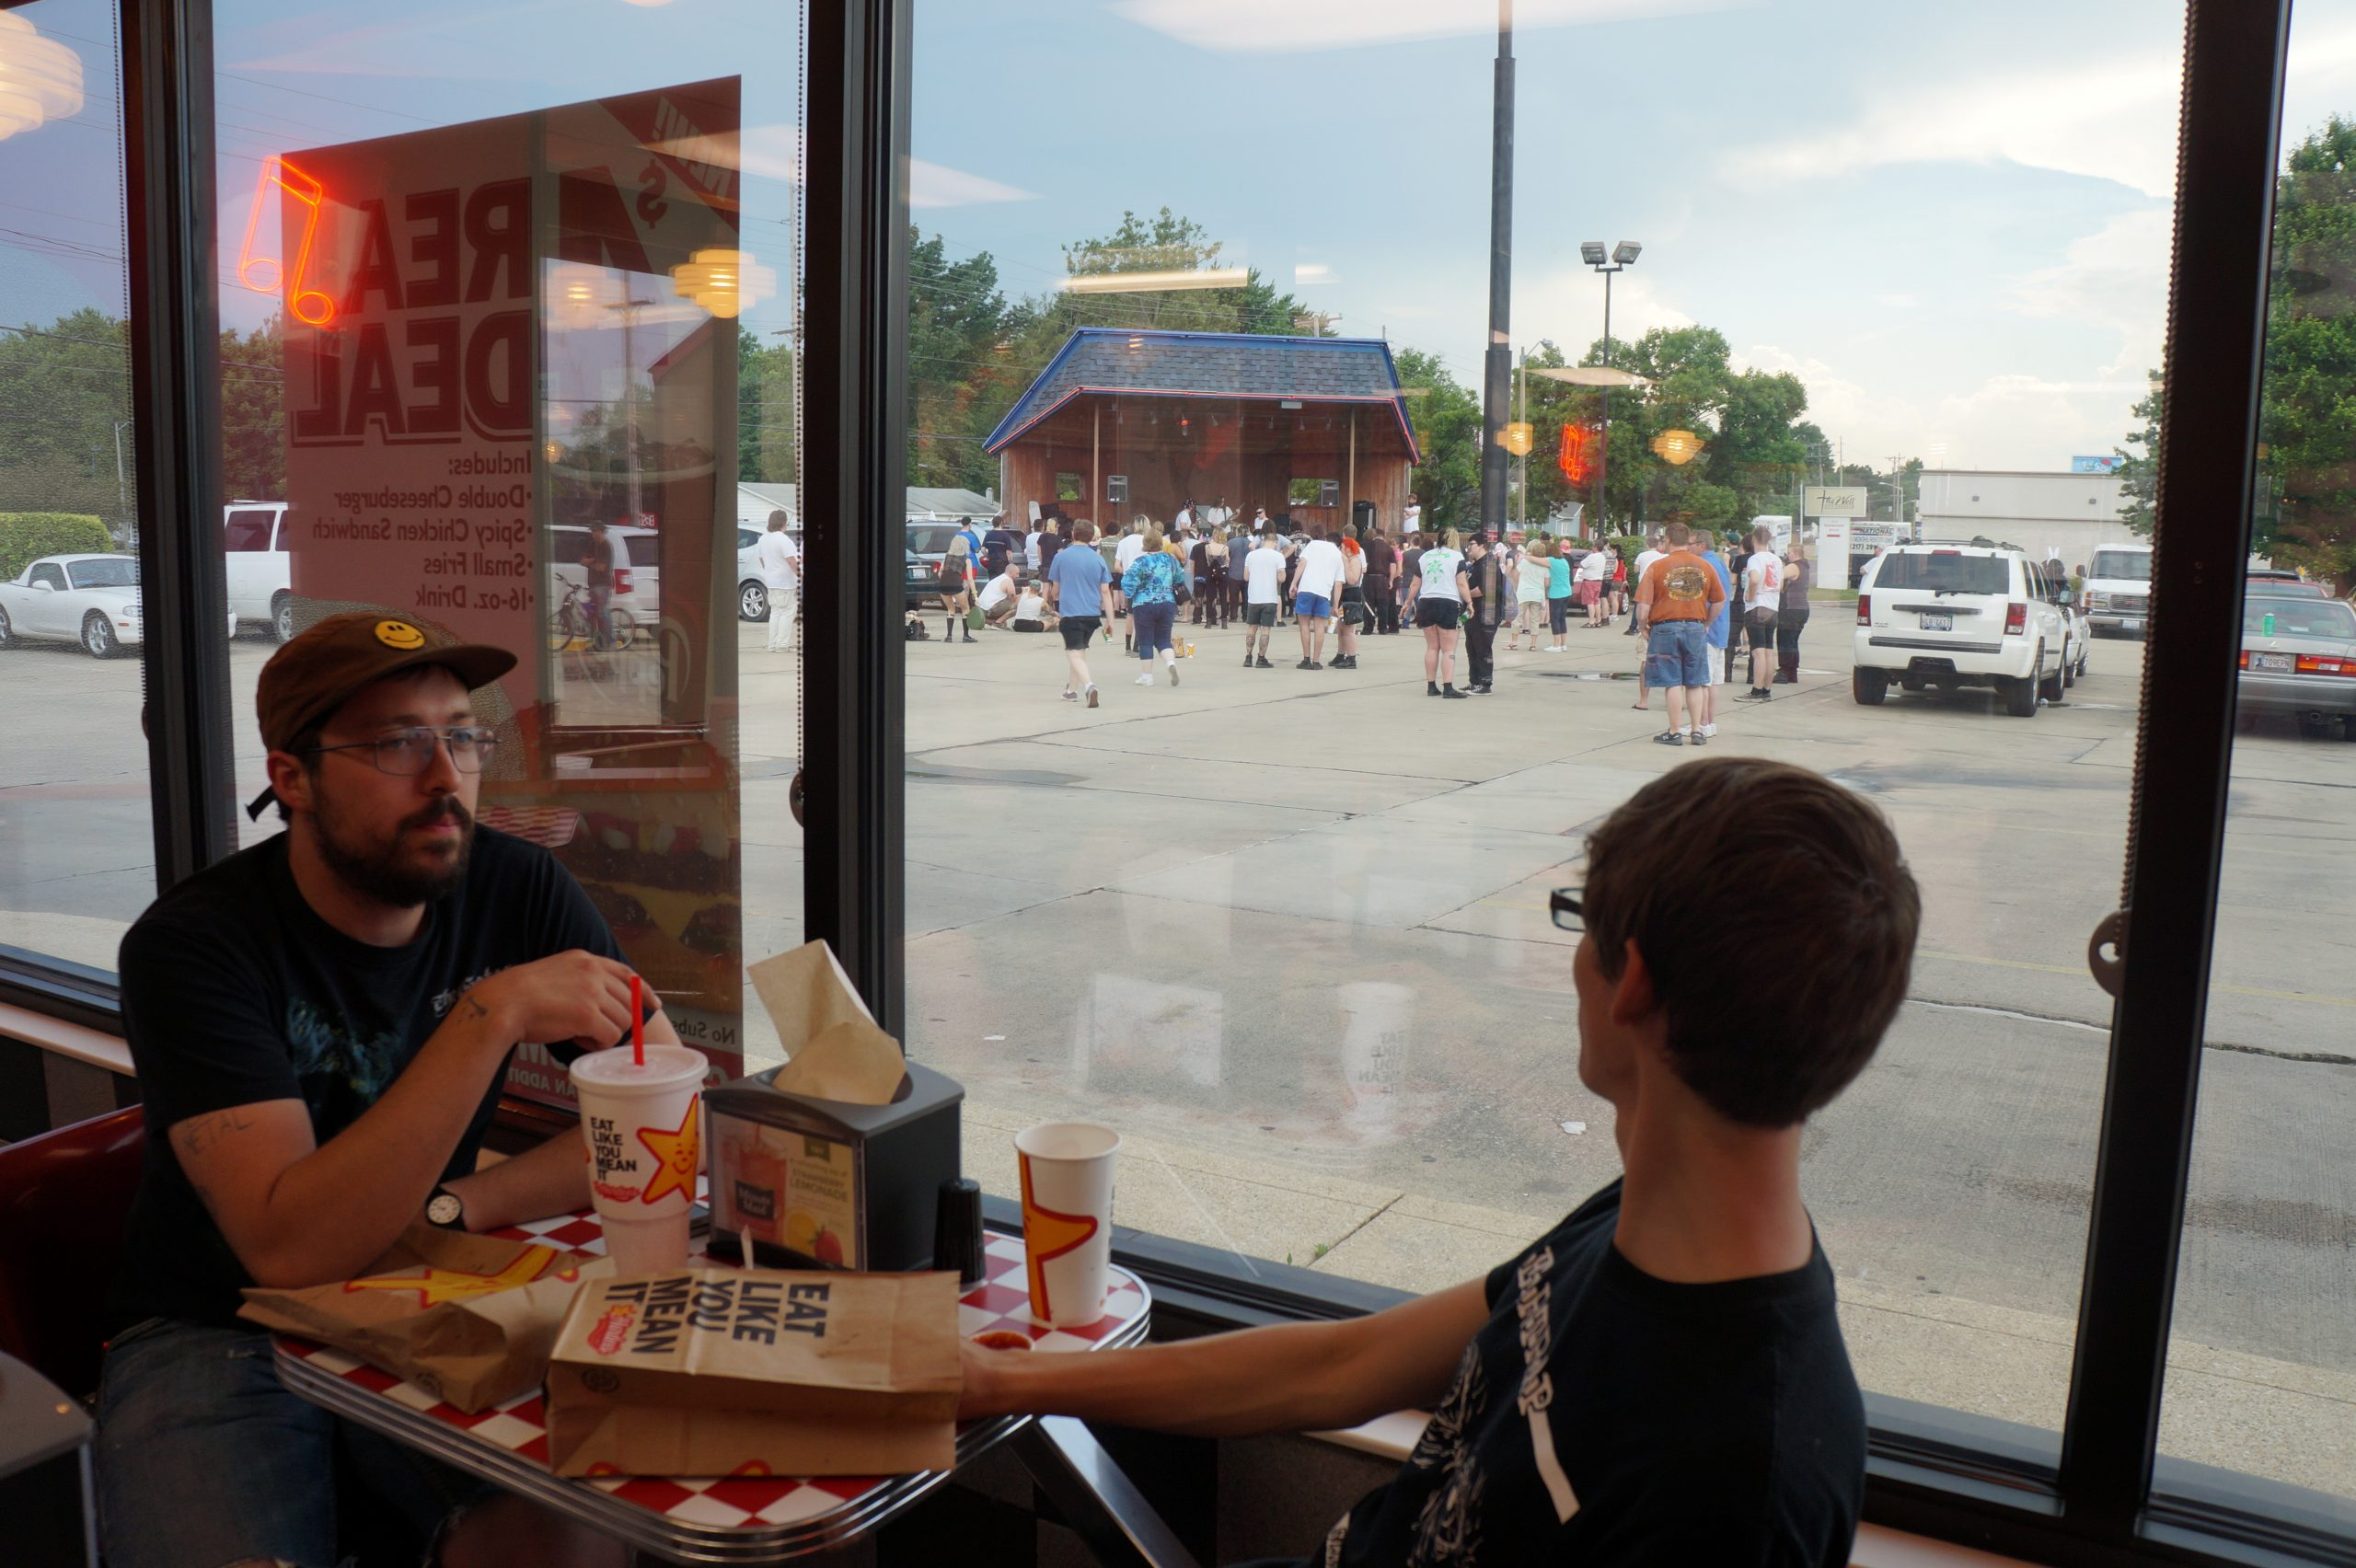 Springfield natives Alistair Reynolds and Drew Kodrich eat inside Rock 'n' Roll Hardee's during the show.